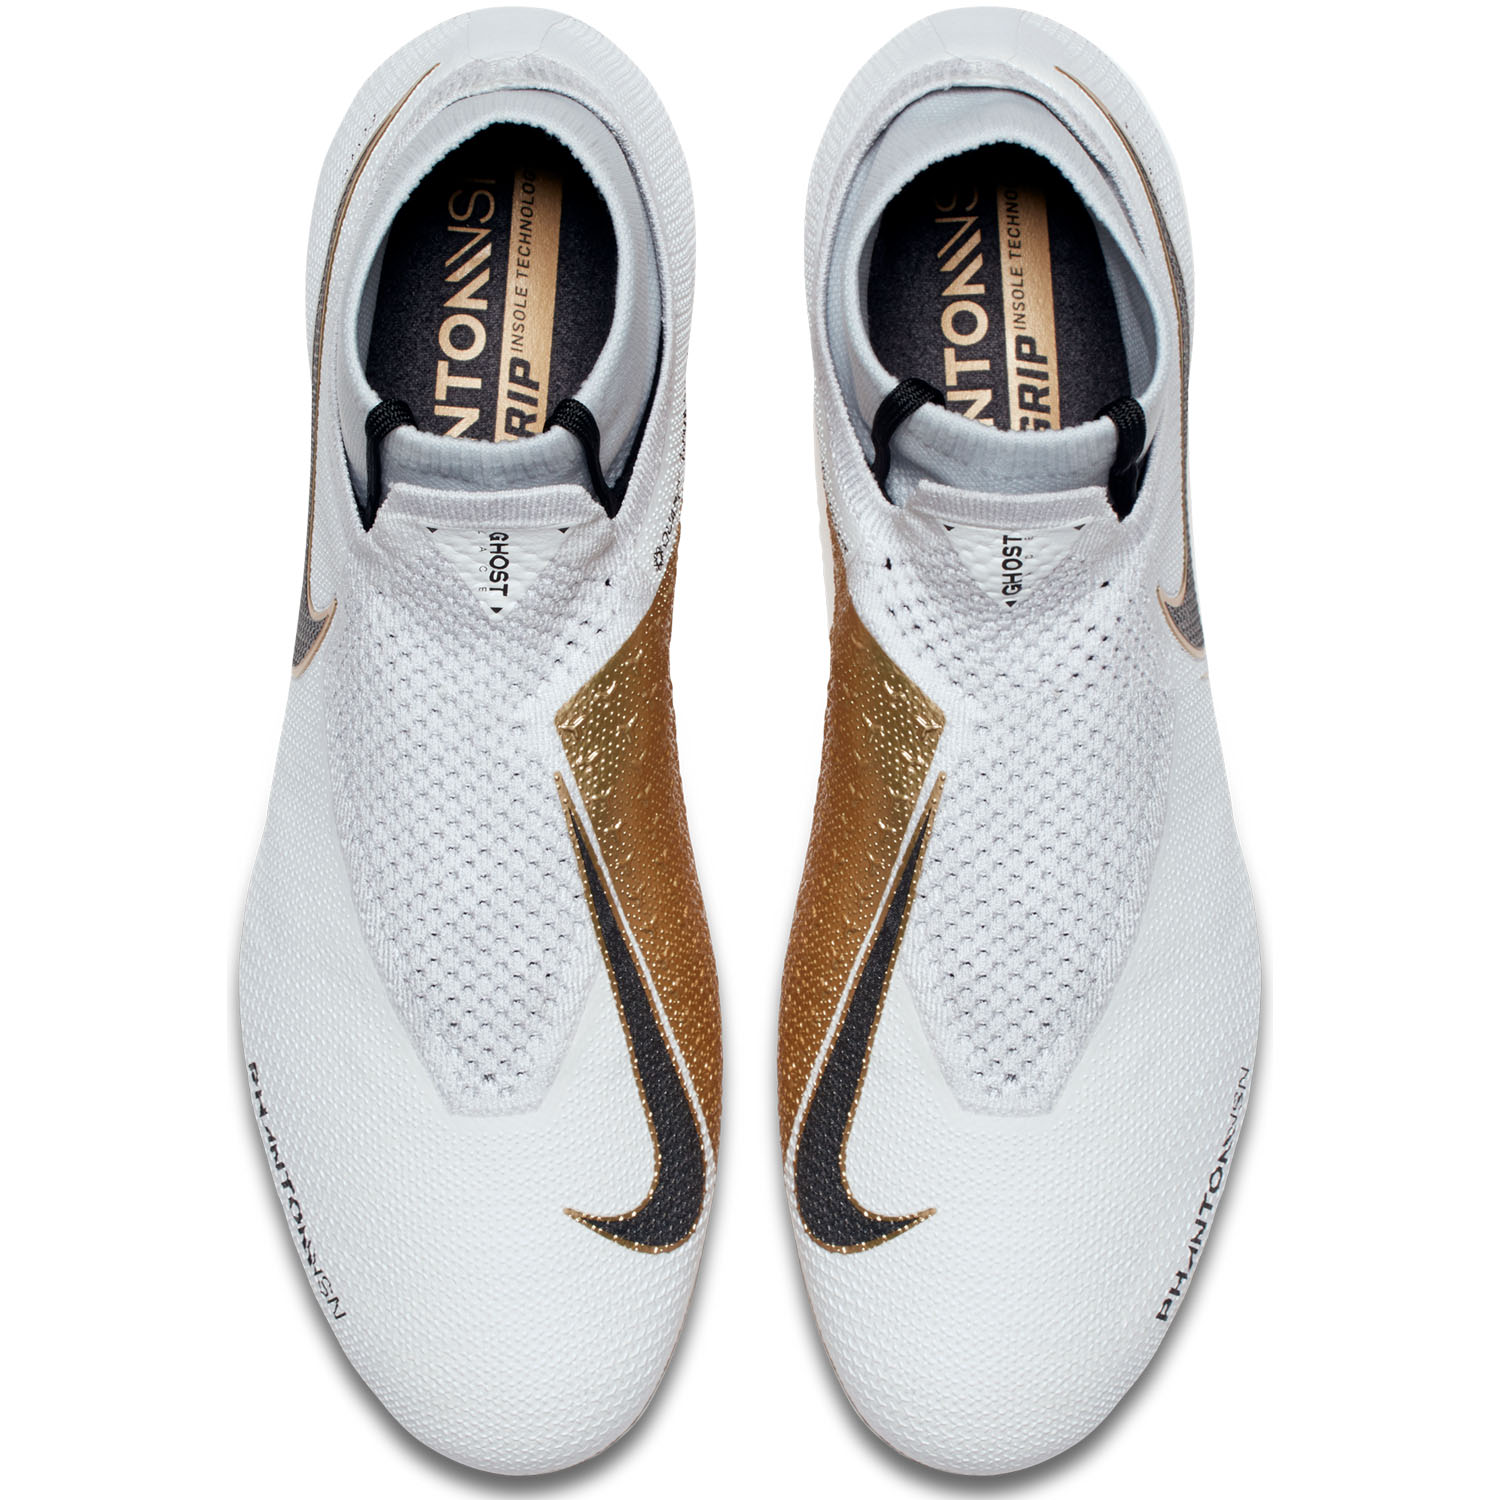 buy popular 06cc7 2a493 Nike Phantom VSN Elite DF FG Limited Edition